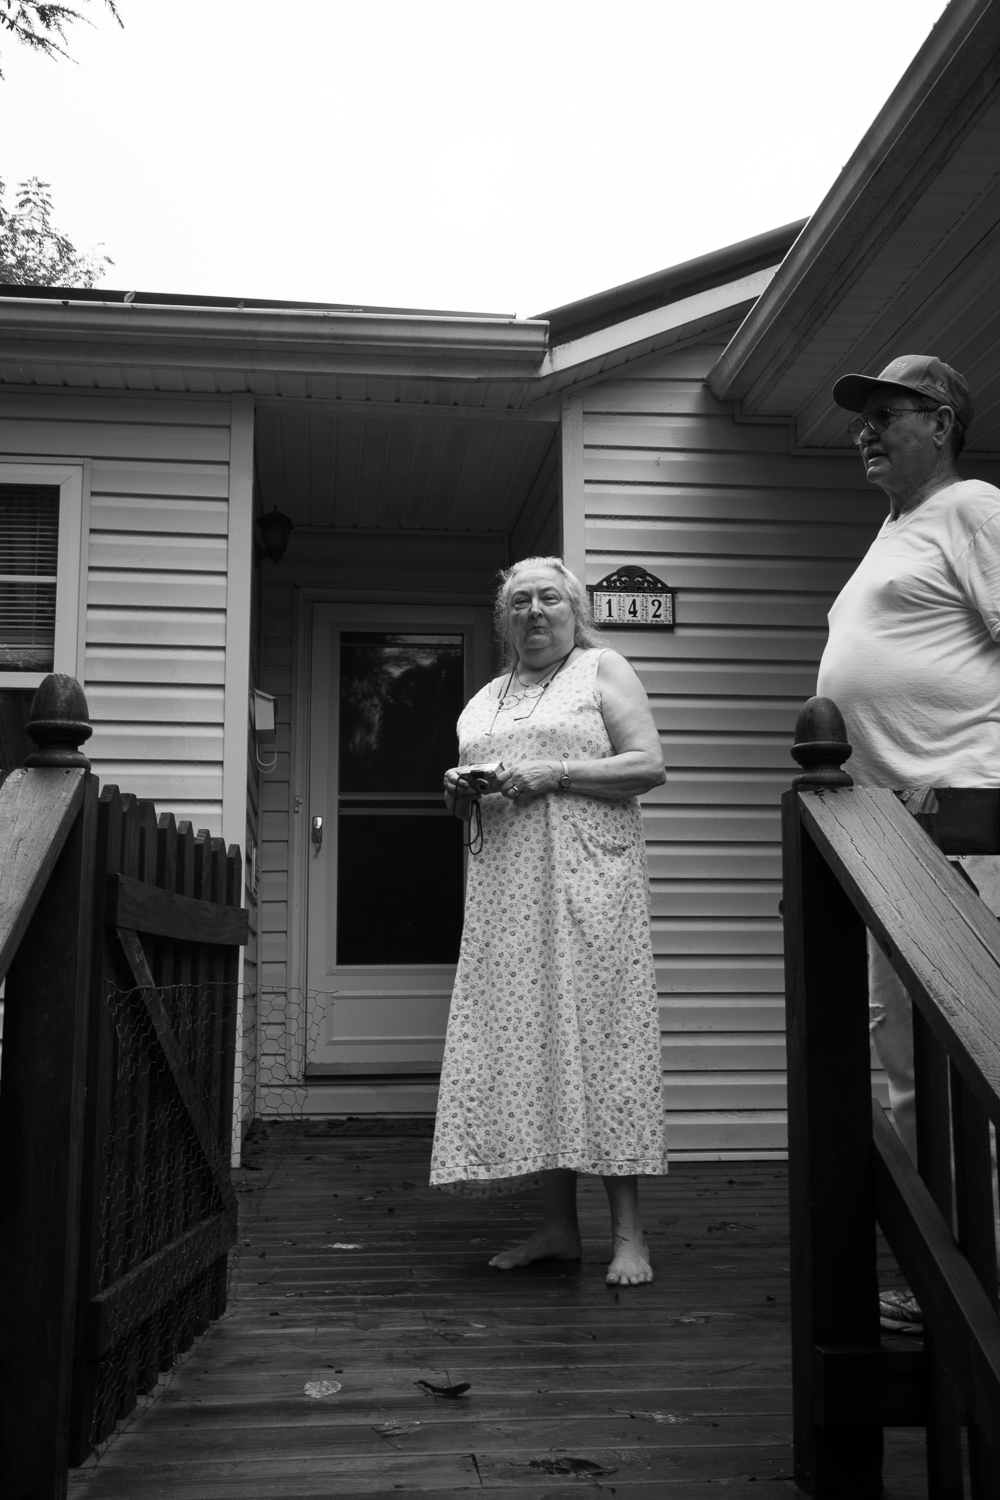 Sep. 29th, 2015 - After a late lunch, Jean Fletcher (centre) and her husband Franklin Fletcher Sr. (right) stand out on their porch, take pictures, and watch the rapidly rising water draw closer to their door.